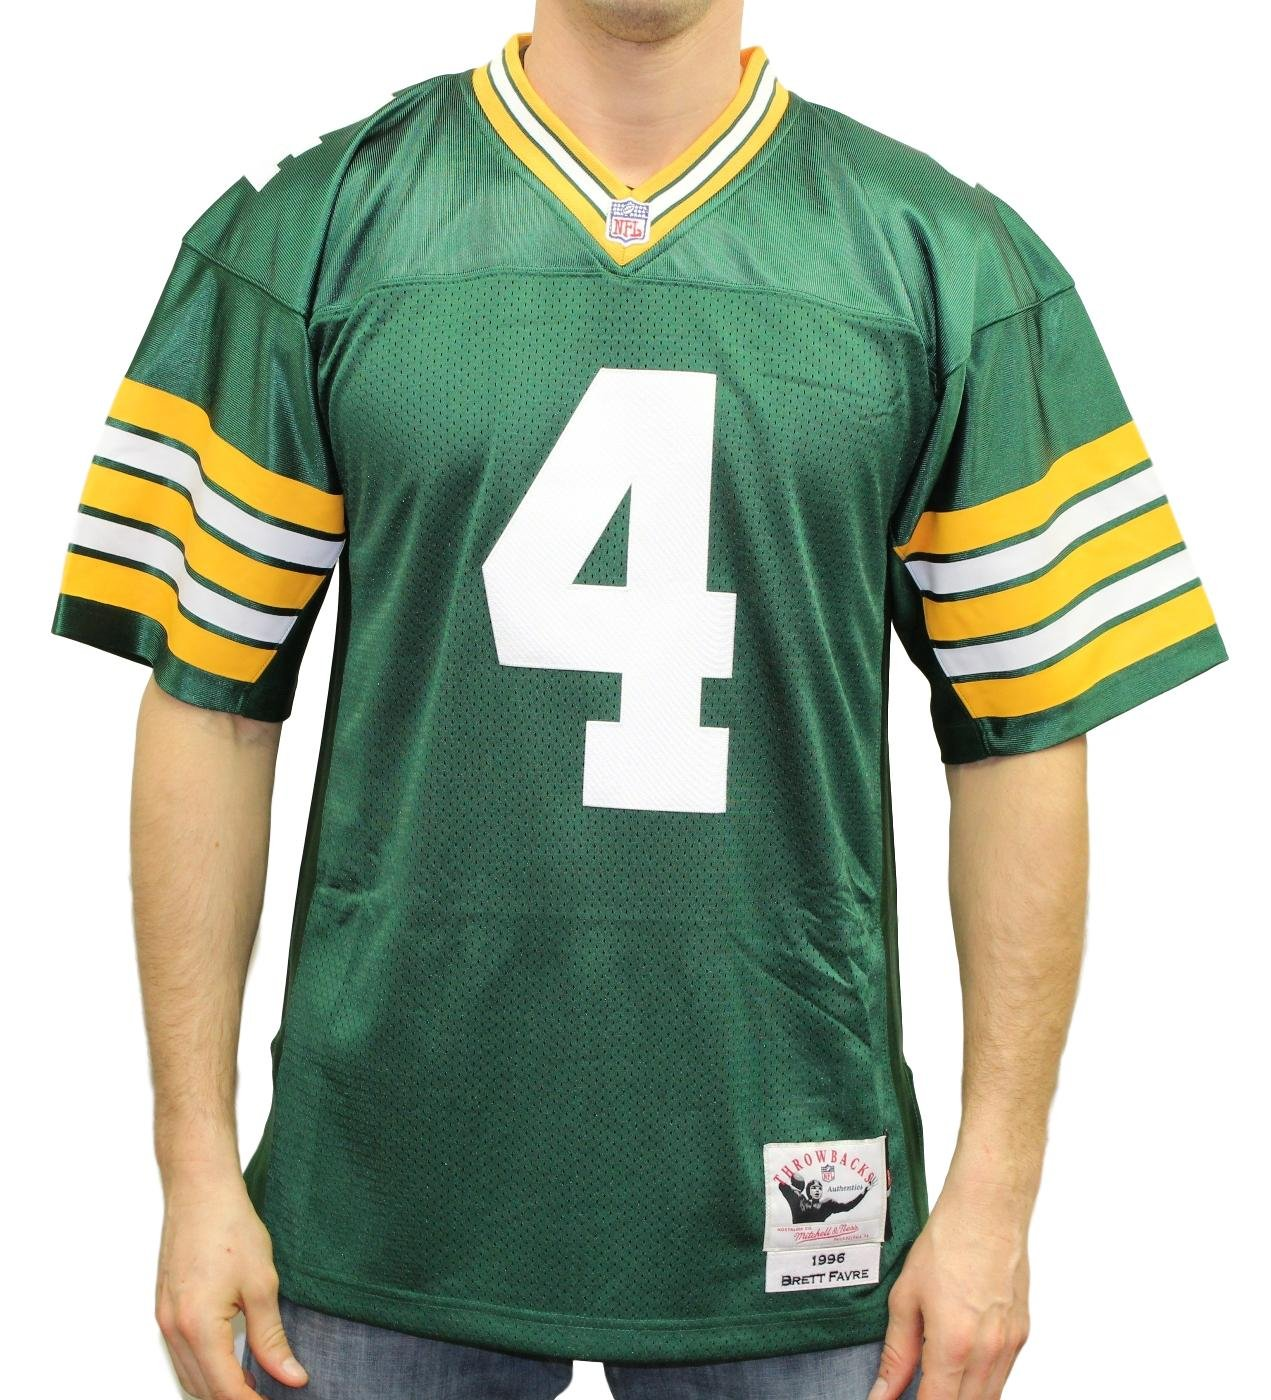 outlet store 9c3ef e58c3 Amazon.com : Mitchell & Ness Brett Favre 1996 Authentic ...